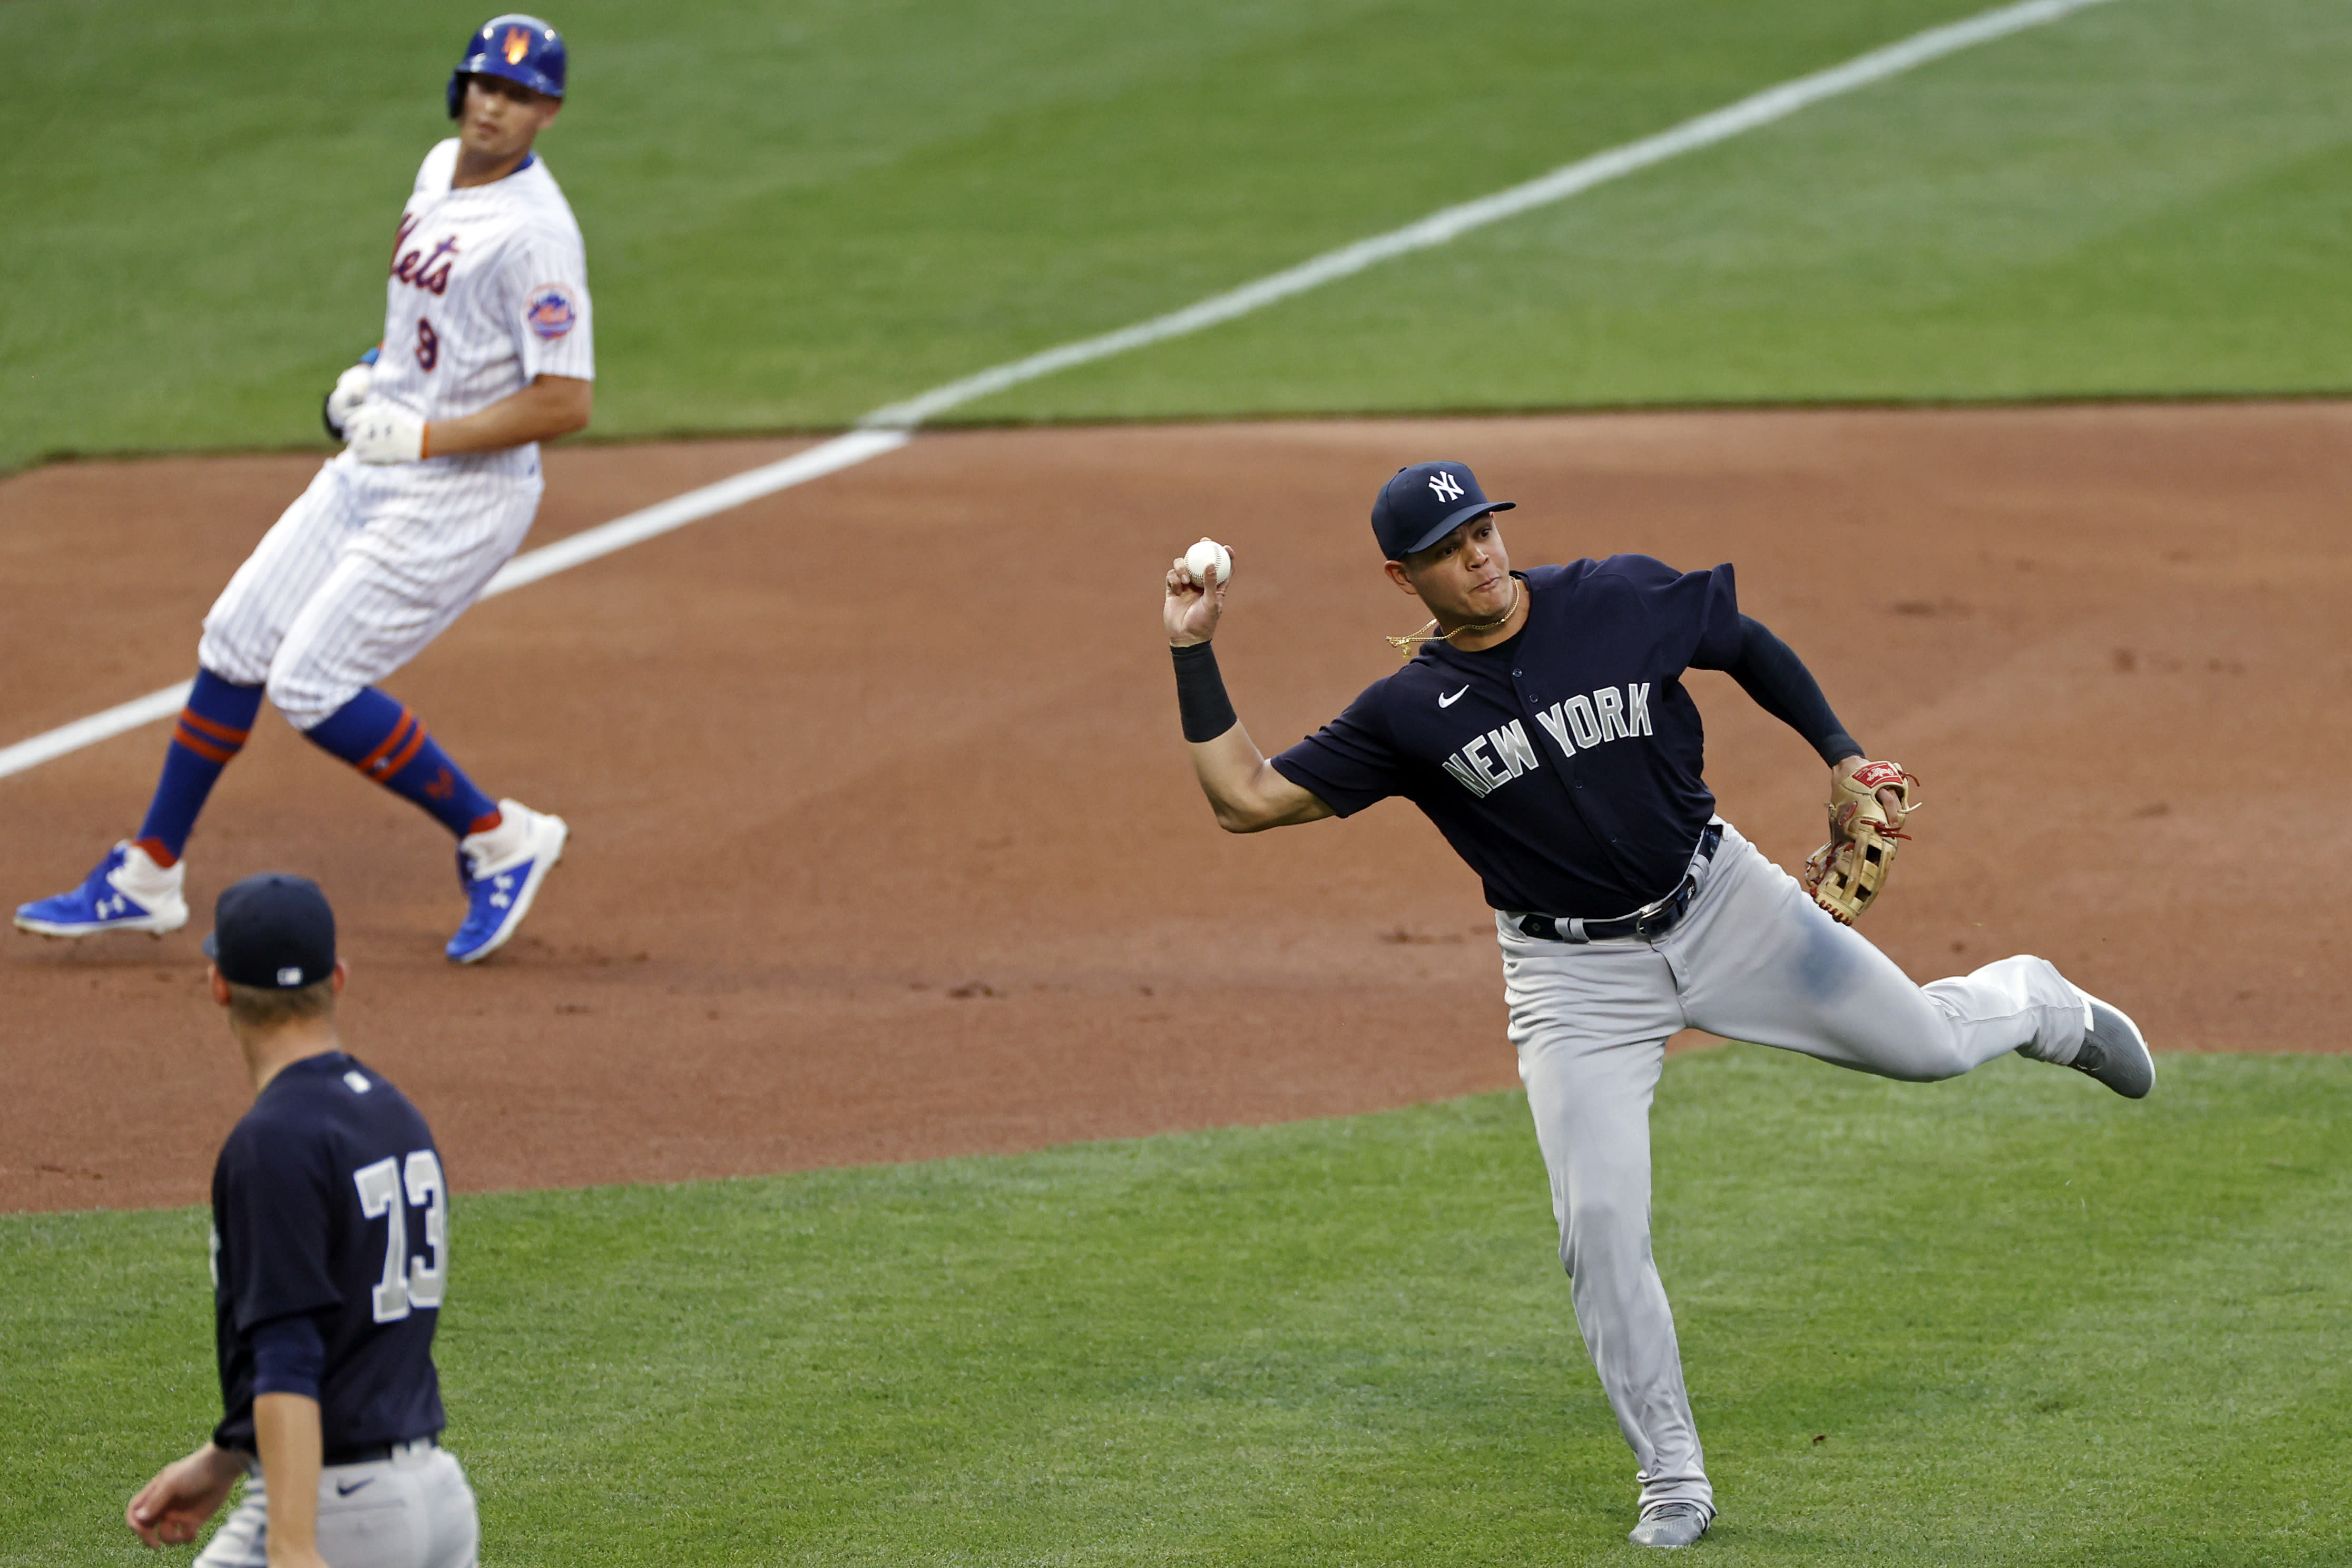 New York Yankees third baseman Gio Urshela throws out New York Mets Yoenis Cespedes to end the first inning of a baseball spring training game Saturday, July 18, 2020, in New York. (AP Photo/Adam Hunger)